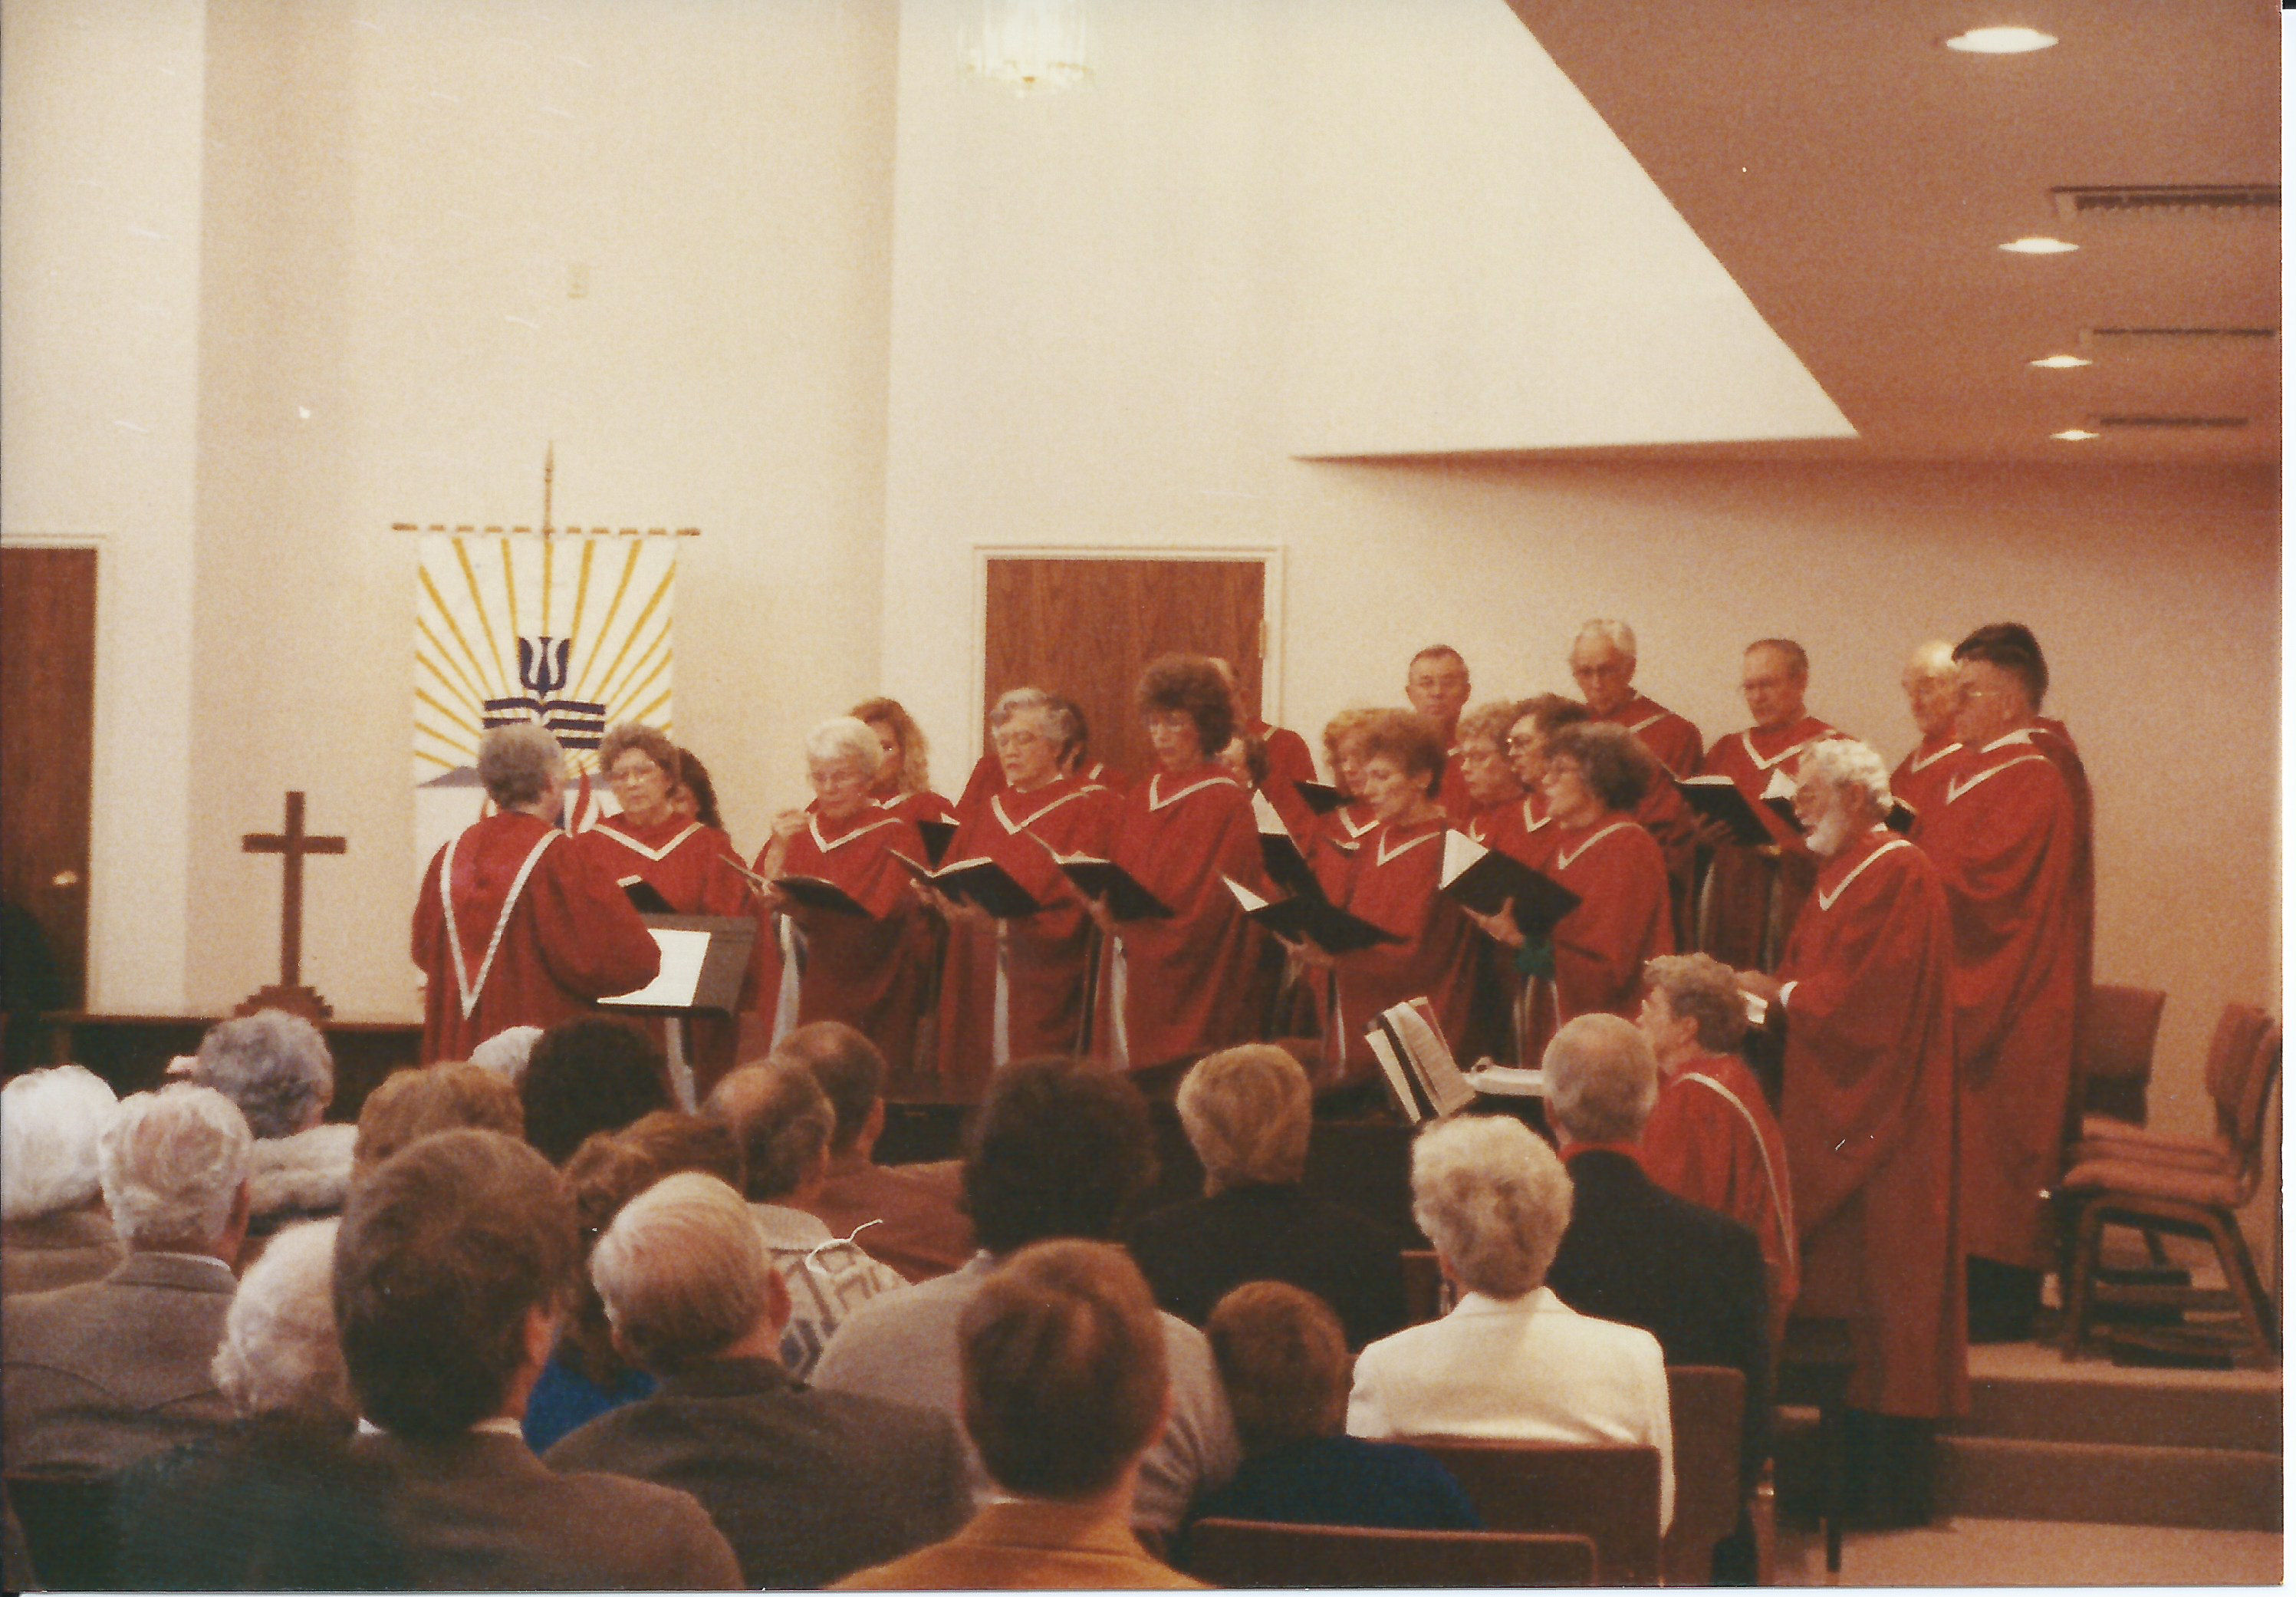 Choir at Dedication